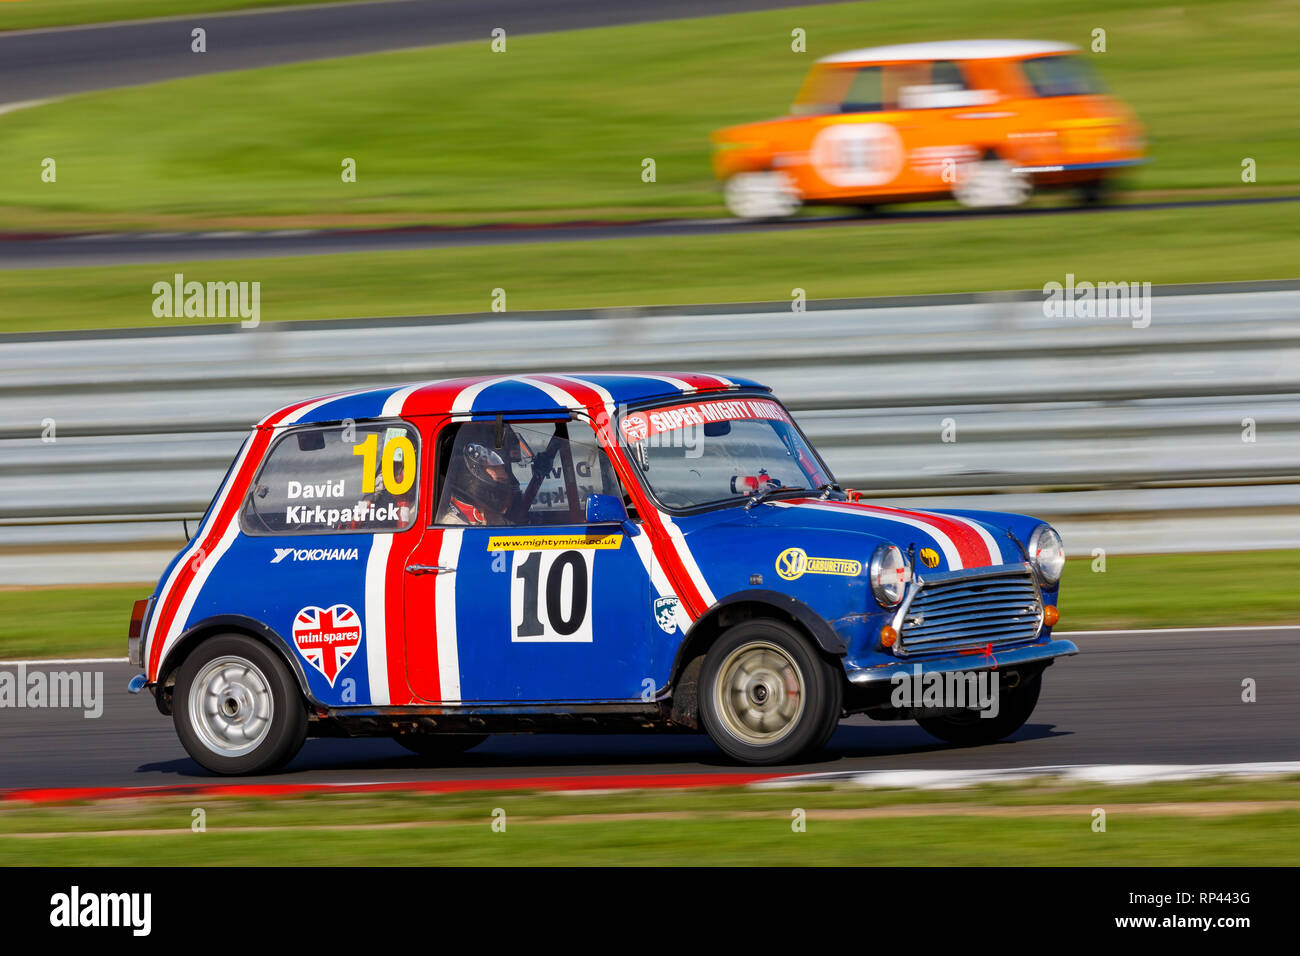 David Kirkpatrick in his Super Mighty Minis Championship race entrant at Snetterton 2018, Norfolk, UK. - Stock Image